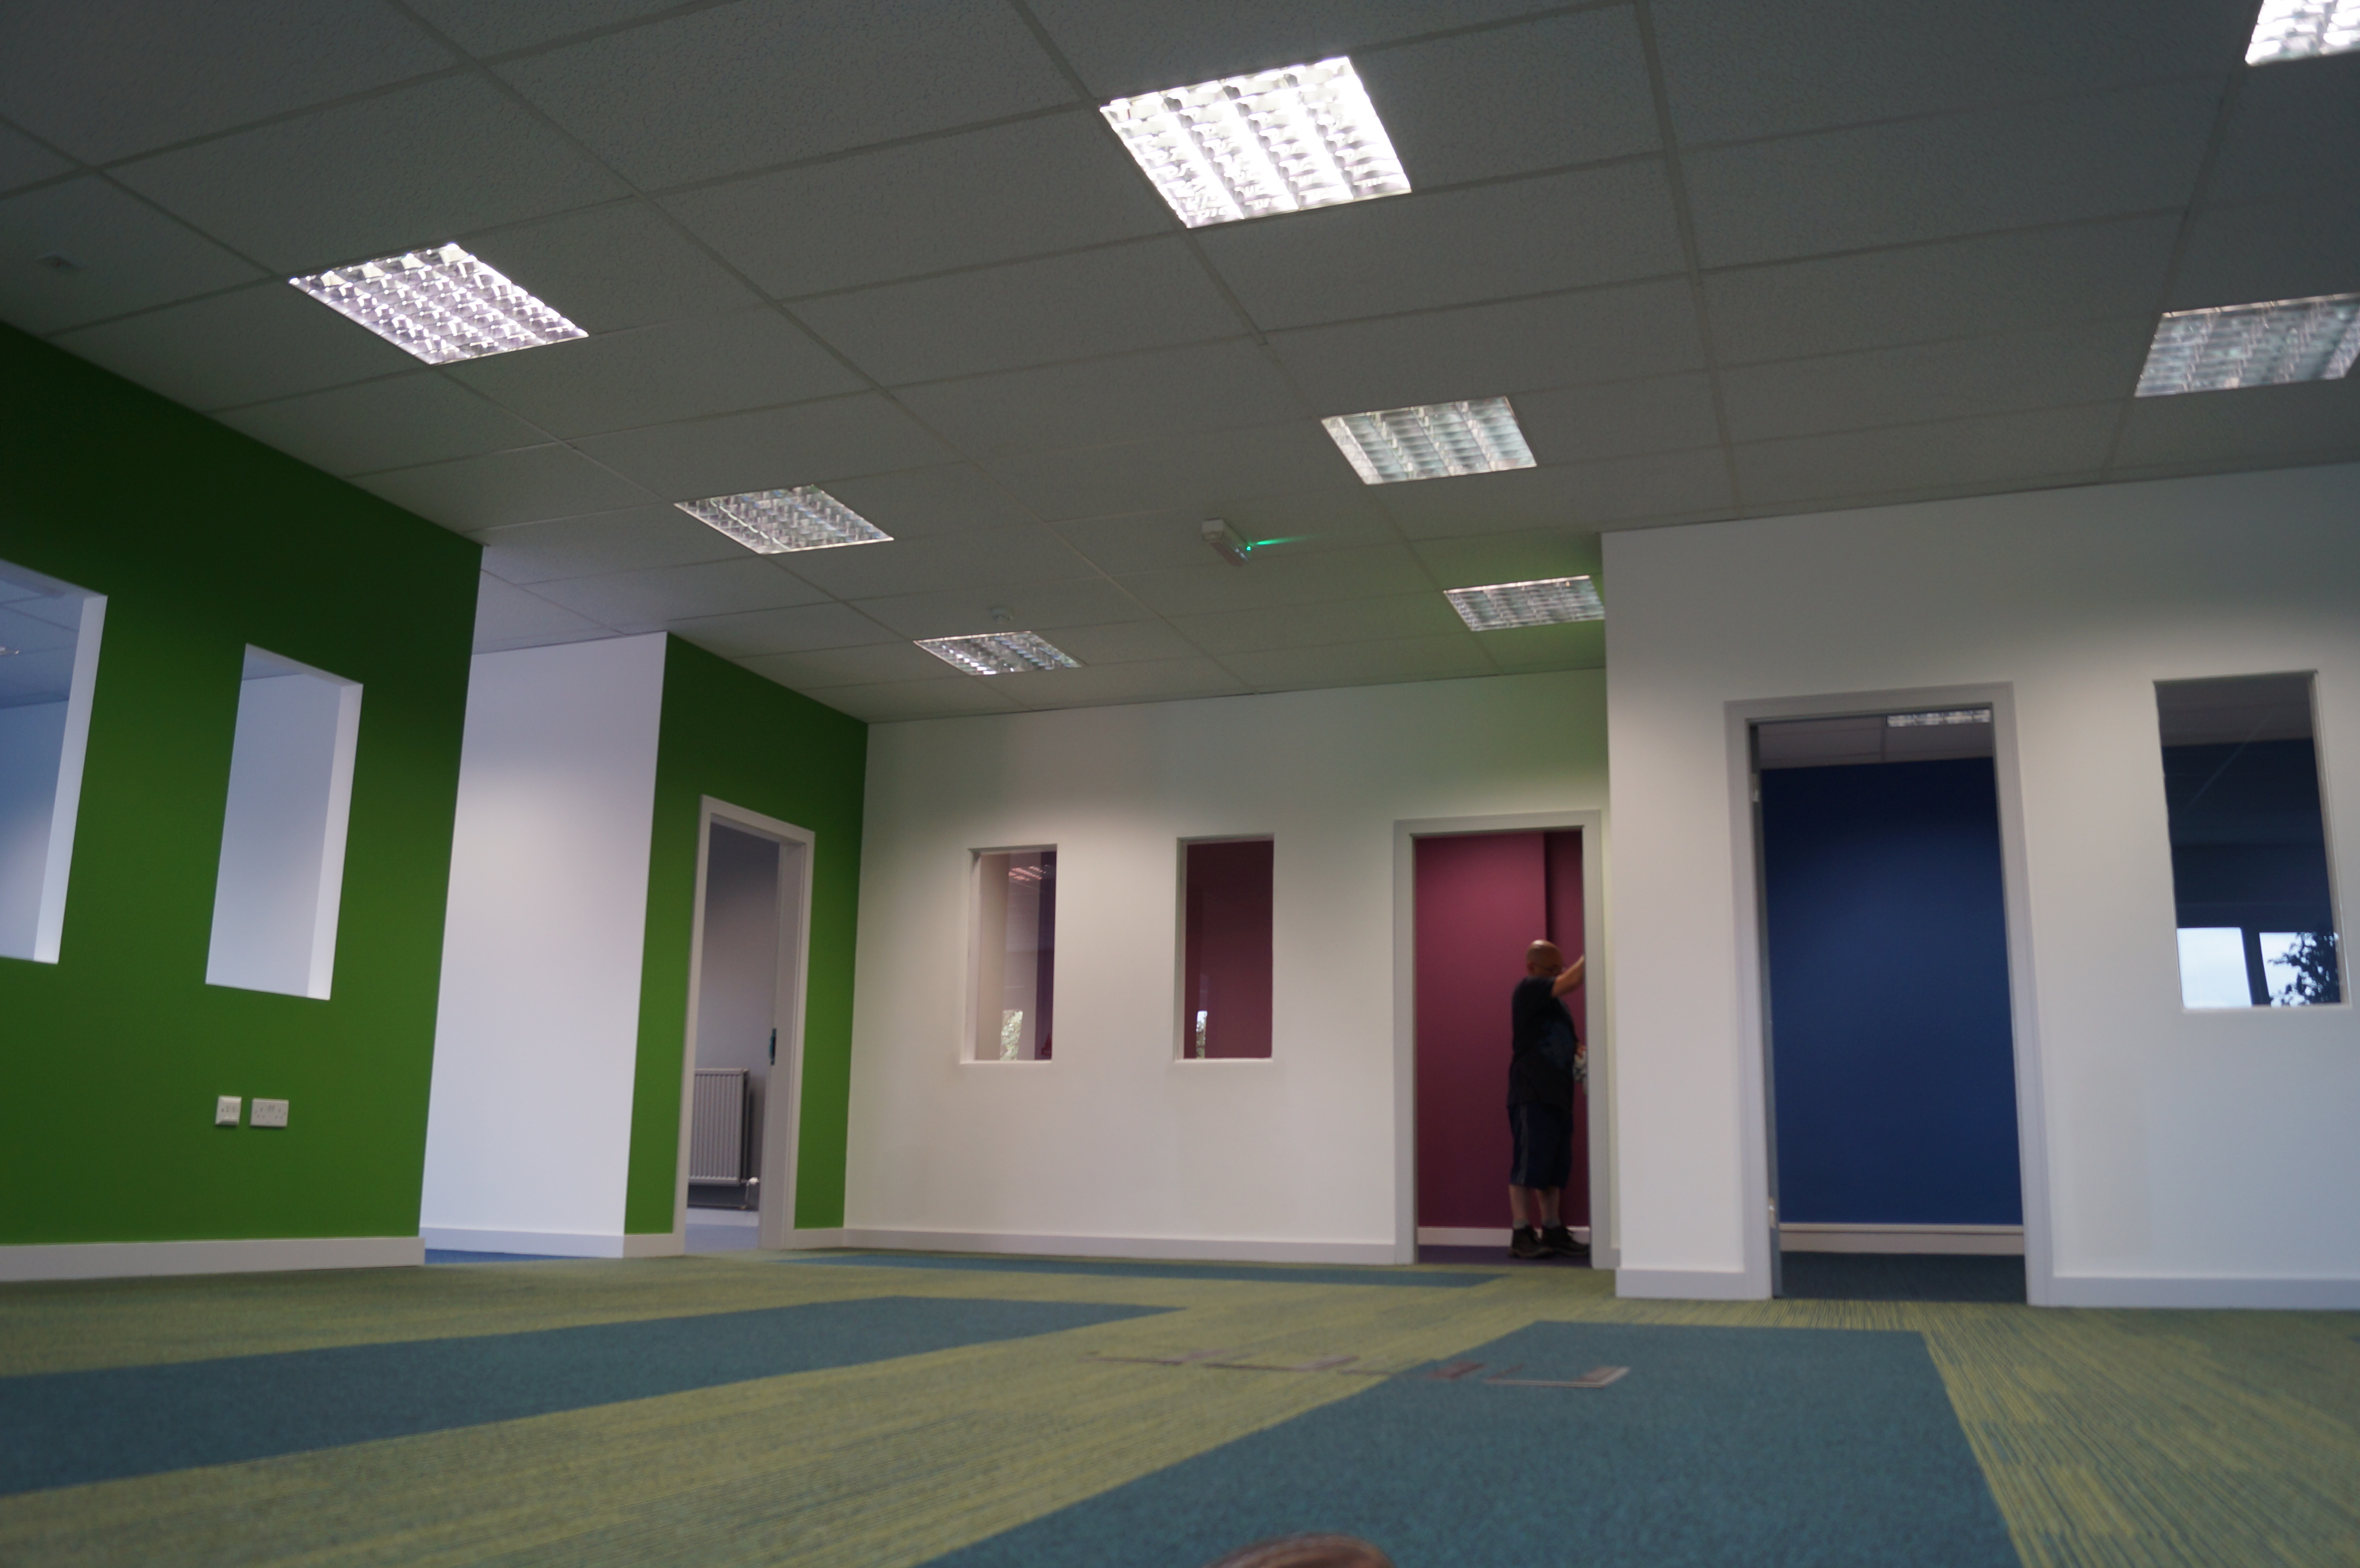 With The London Olympics And Other Large Events Chose Select Interiors Ltd To Complete A Re Design Refurbishment Of Their Manchester